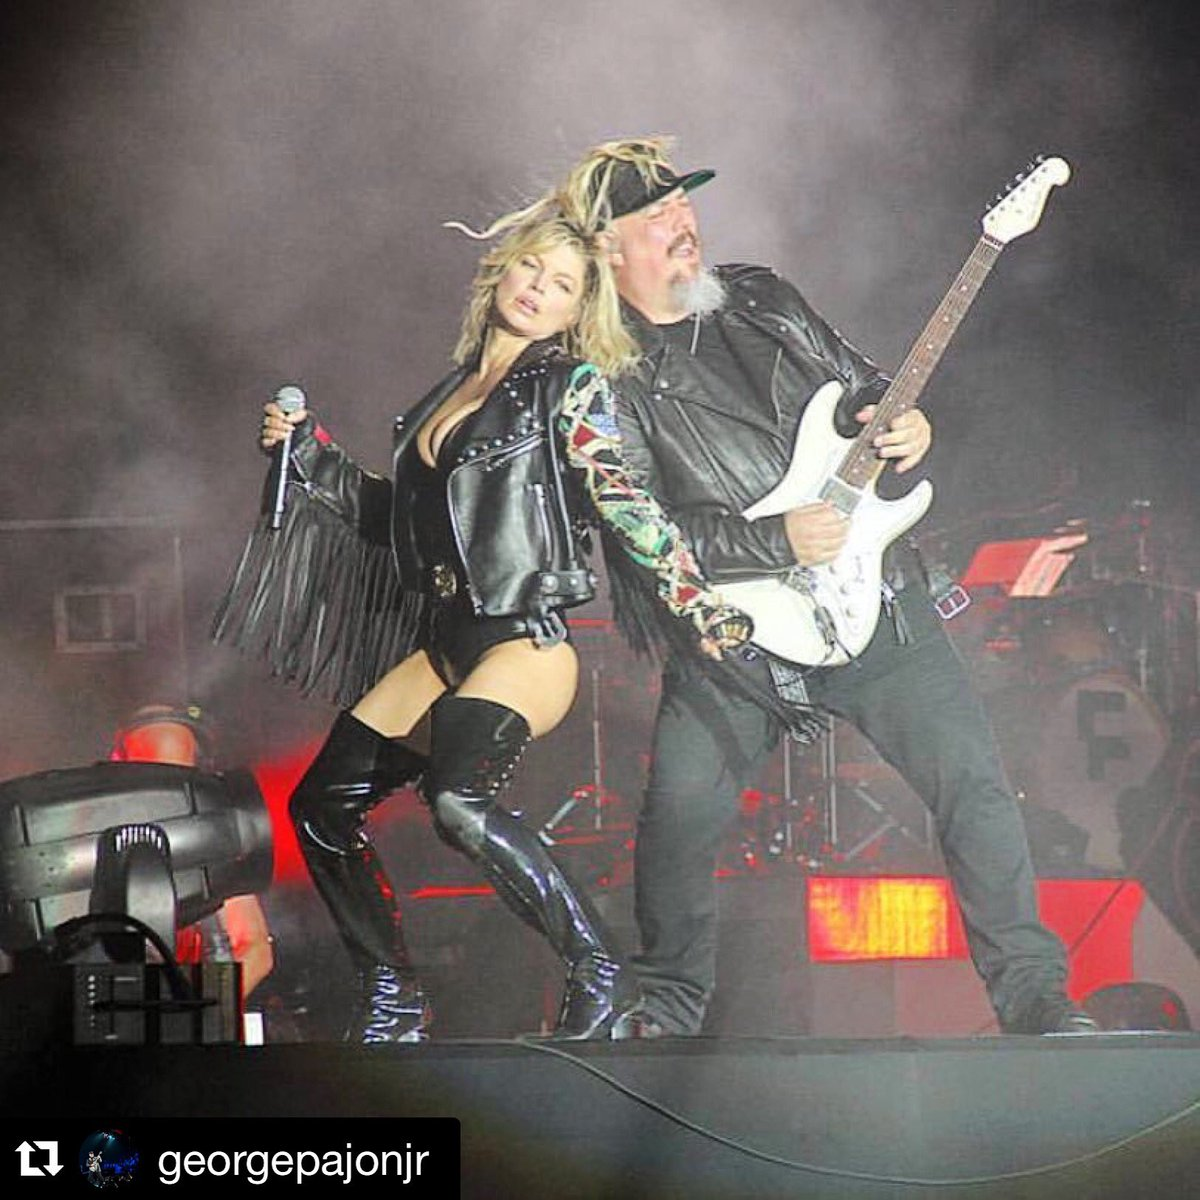 #regram @georgepajon:What an amazing shot. Such a blessing to be back out w/ @fergie #fergie https://t.co/NFbOI87NMs https://t.co/t2EG4aFqMG